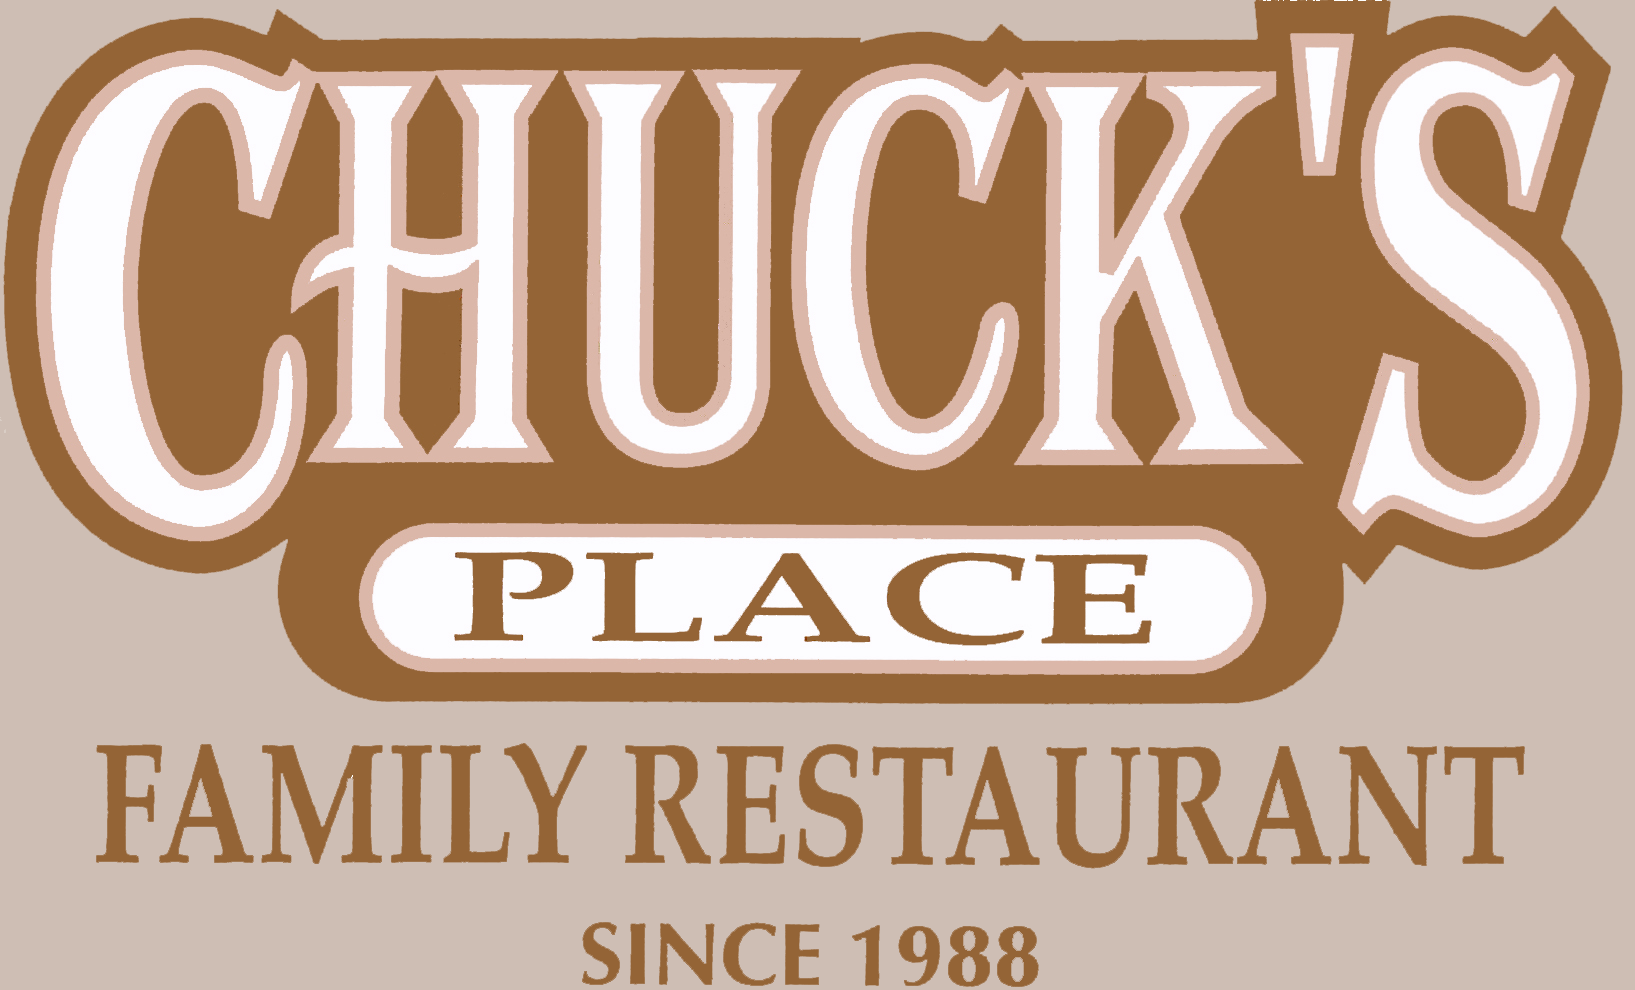 Chuck's Place Family Restaurant